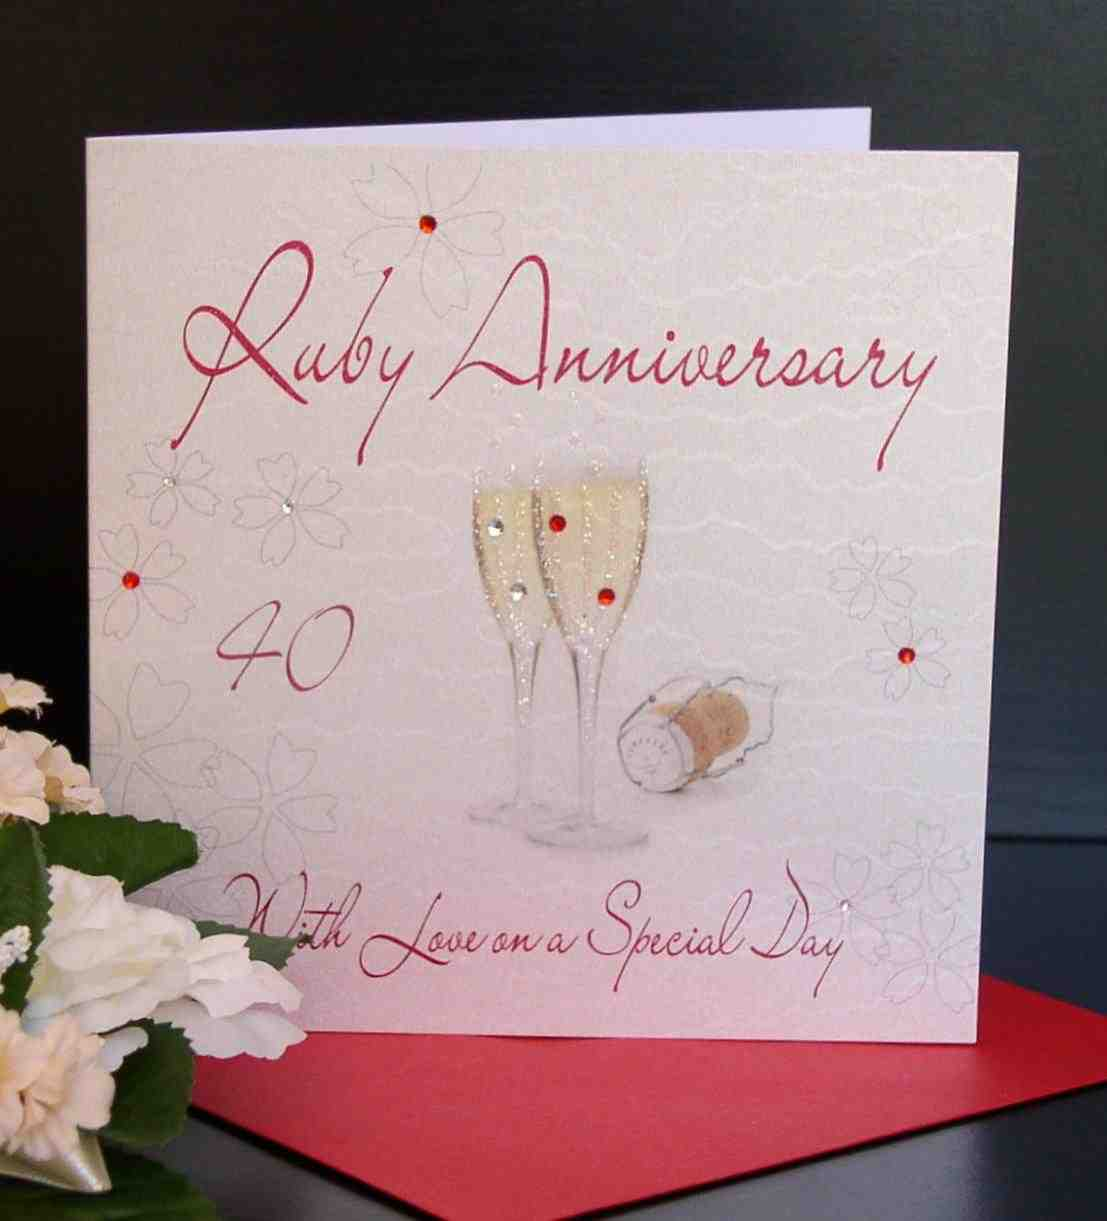 40th Wedding Anniversary Gifts For Parents Ideas : 40Th Wedding Anniversary Gifts For Parents - Wedding and Bridal ...